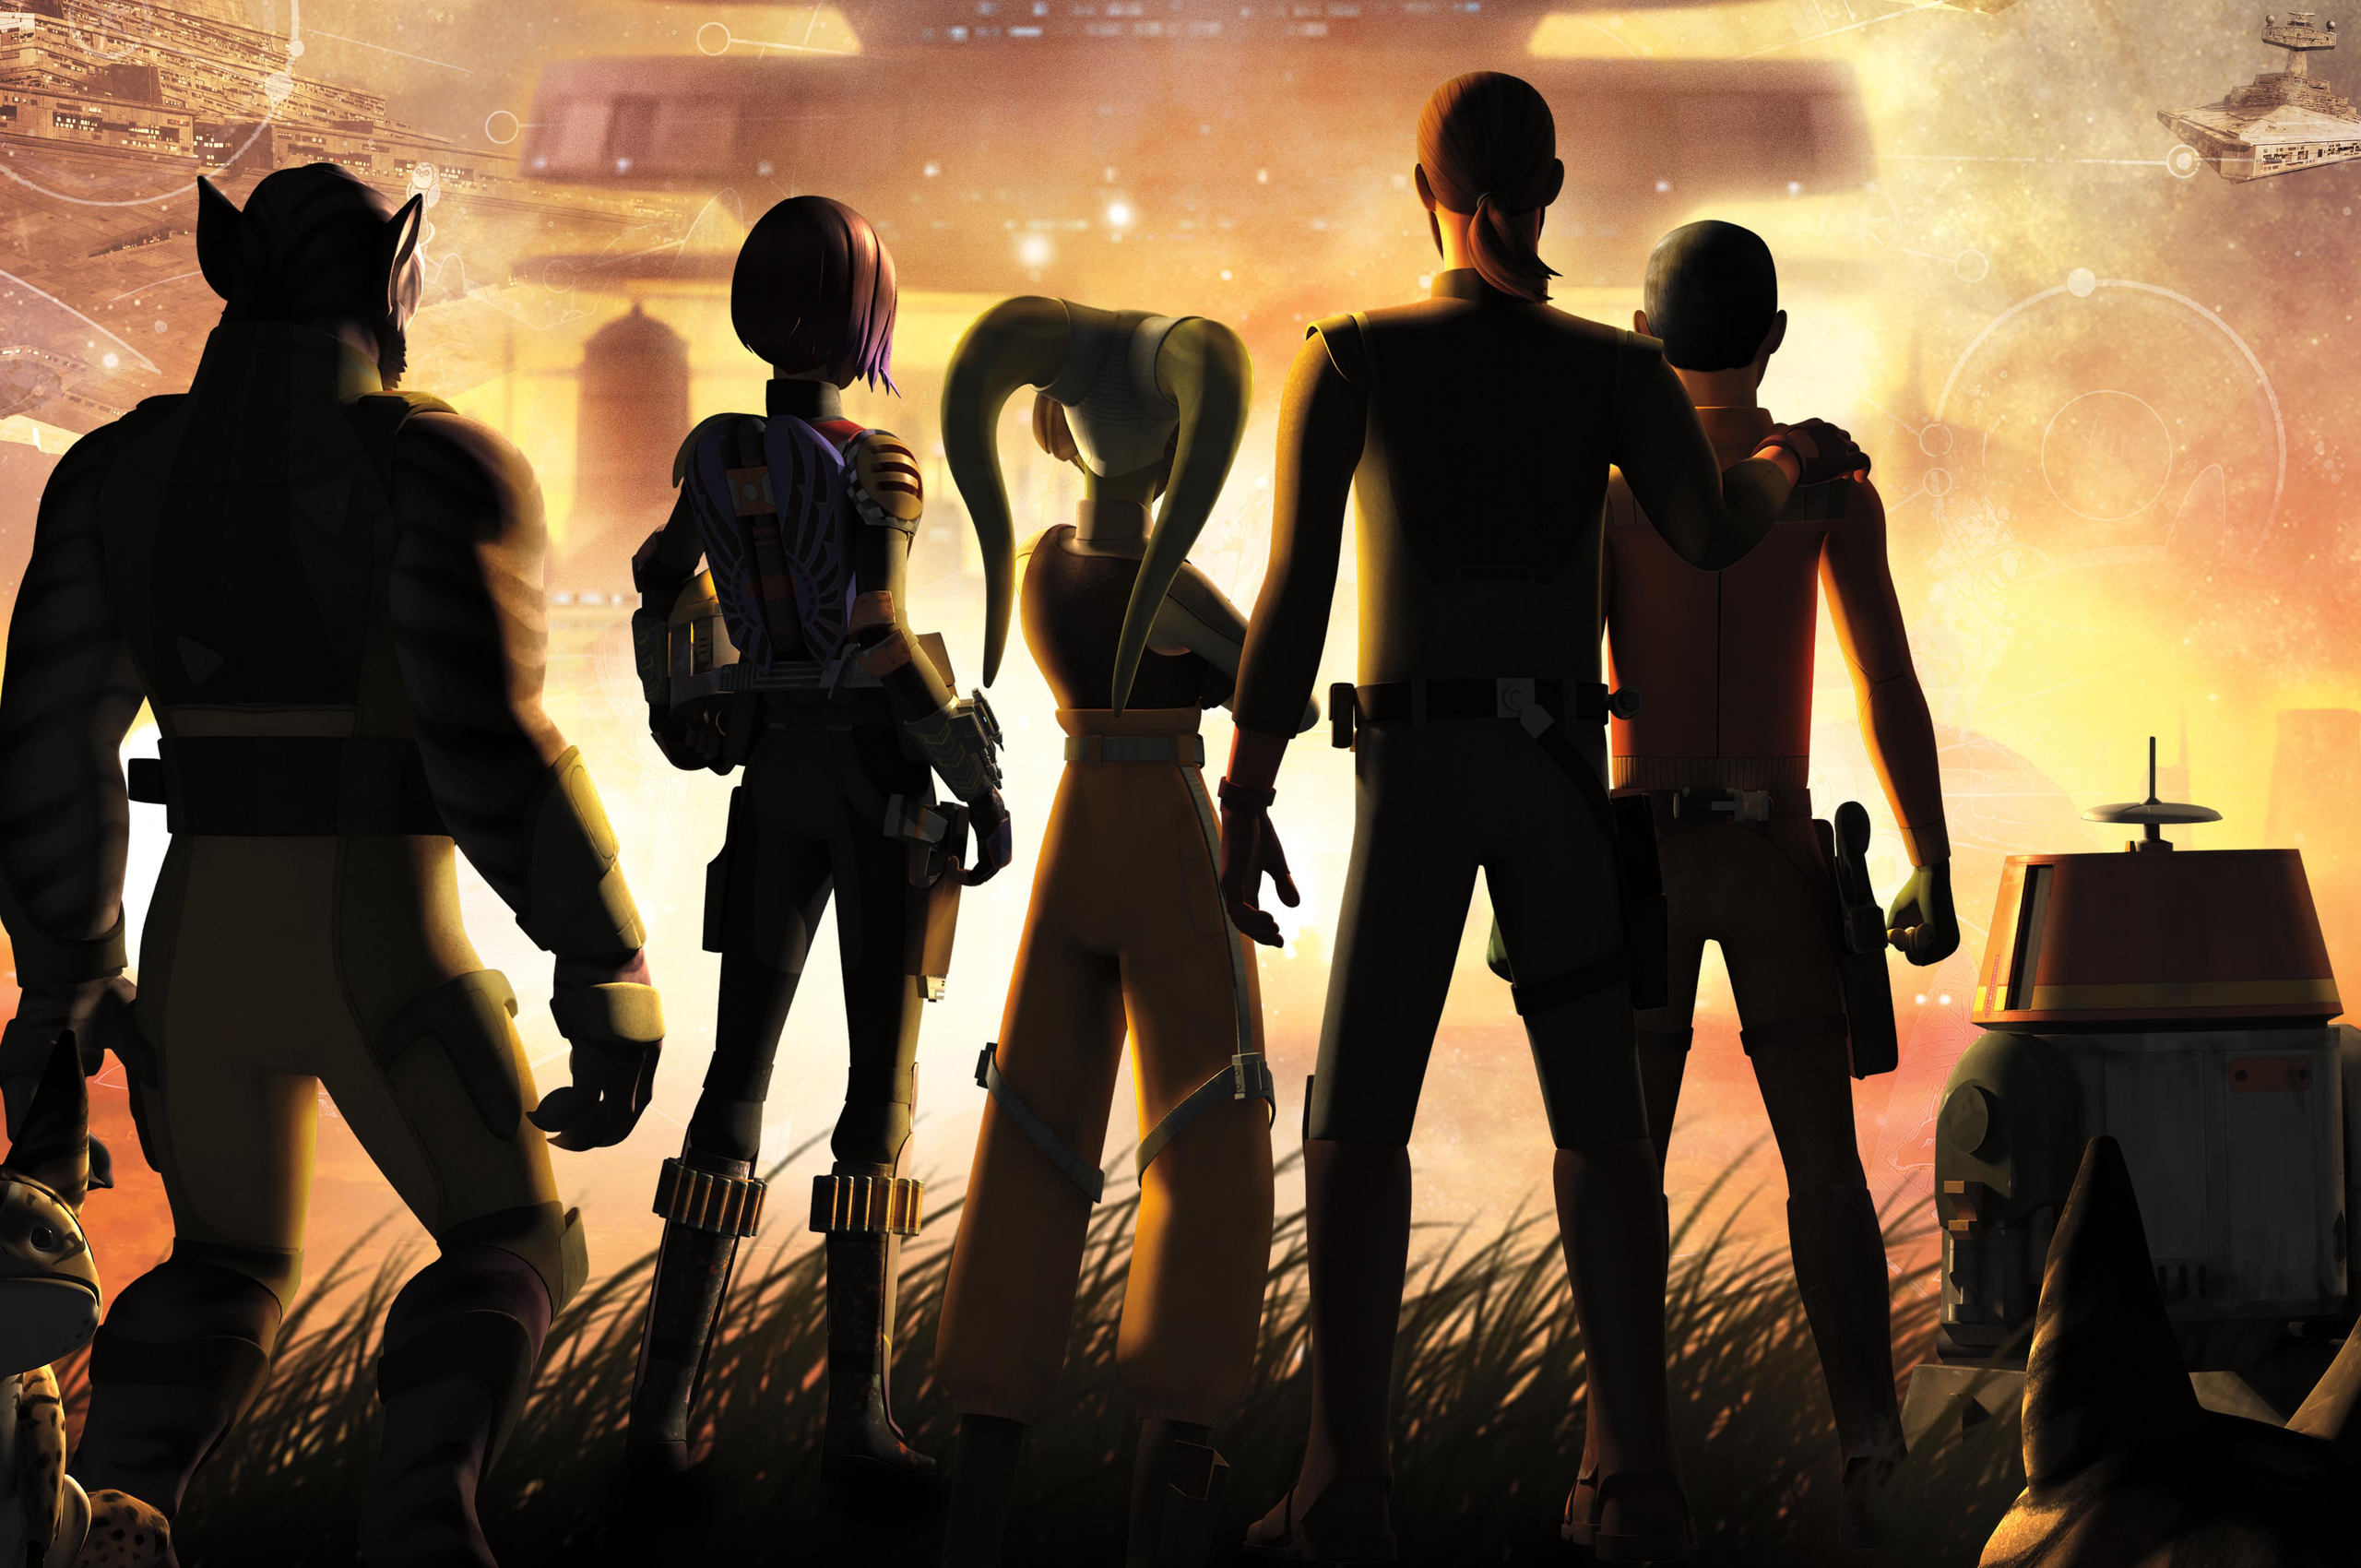 2560x1700 Star Wars Rebels Key Art Chromebook Pixel Hd 4k Wallpapers Images Backgrounds Photos And Pictures